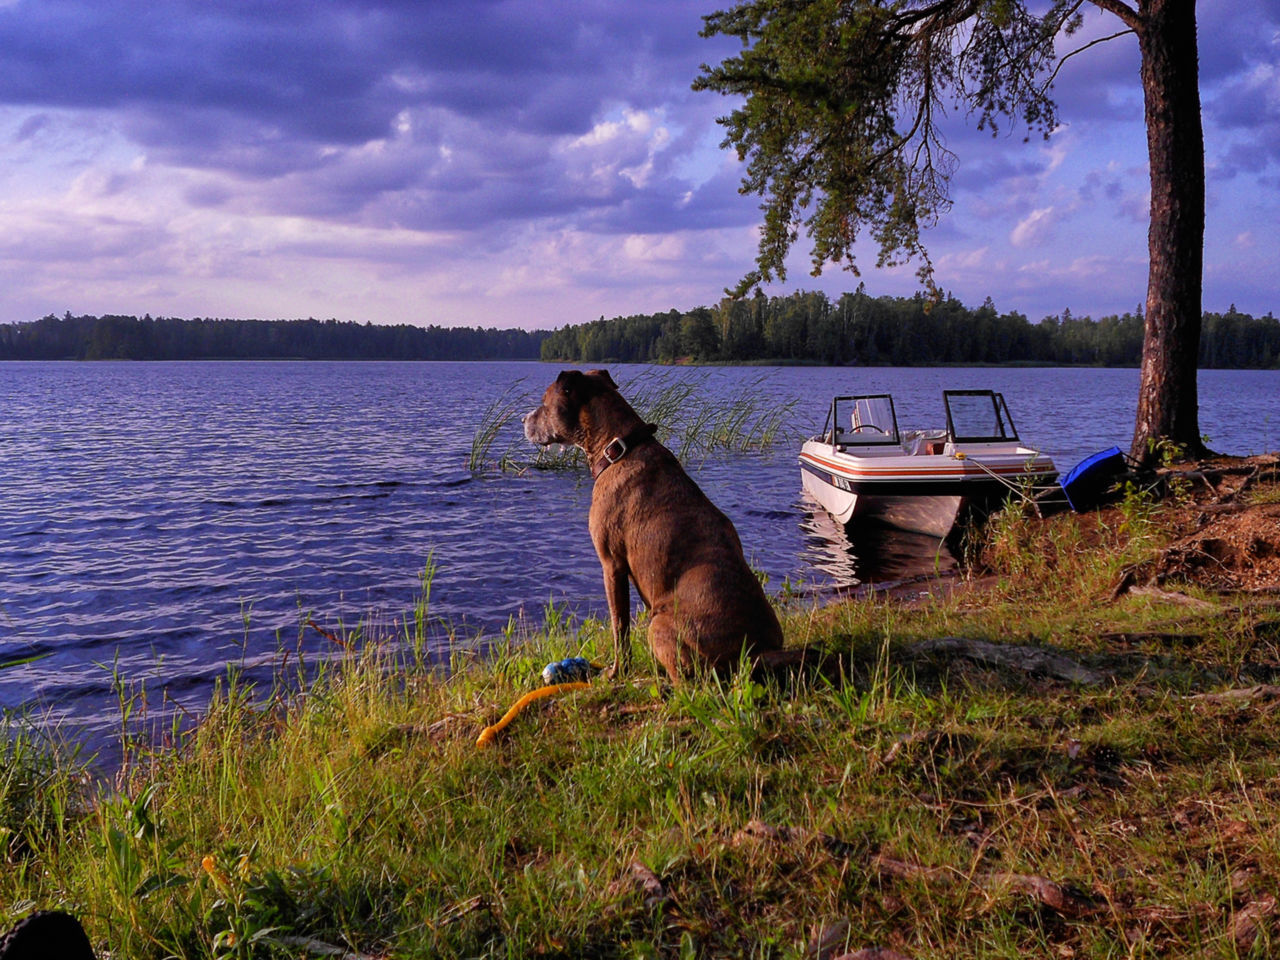 Dog Sitting By Moored Boat At Riverbank Against Cloudy Sky